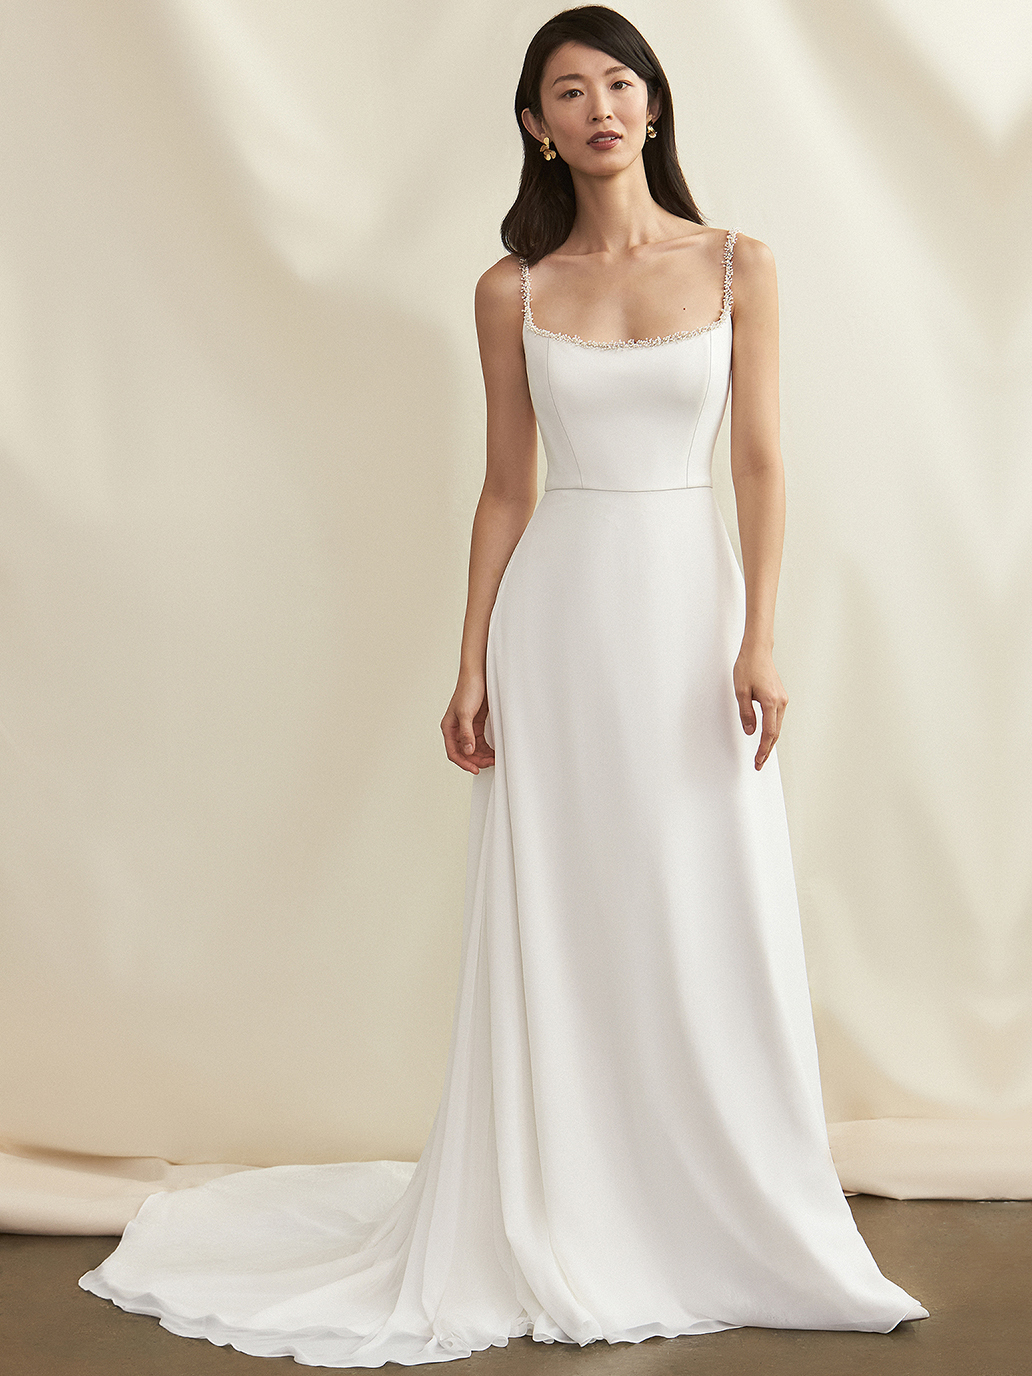 Savannah Miller thin strap square neck a-line wedding dress fall 2021